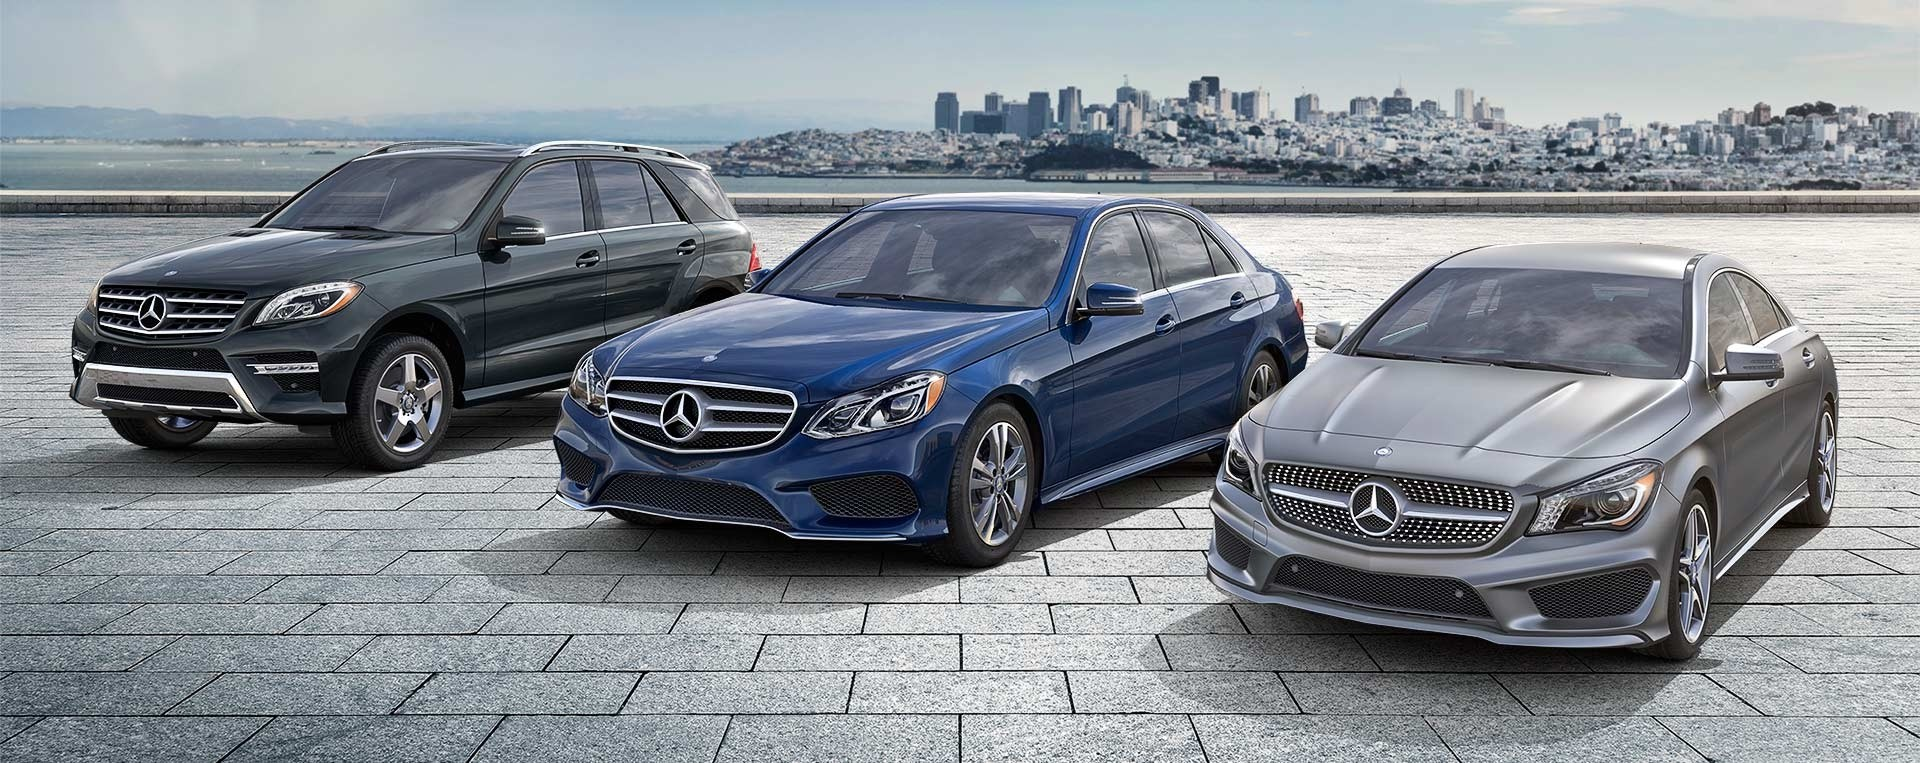 Audi Certified Pre Owned >> Mercedes Benz Certified Pre Owned Program Vs Audi Certified Pre